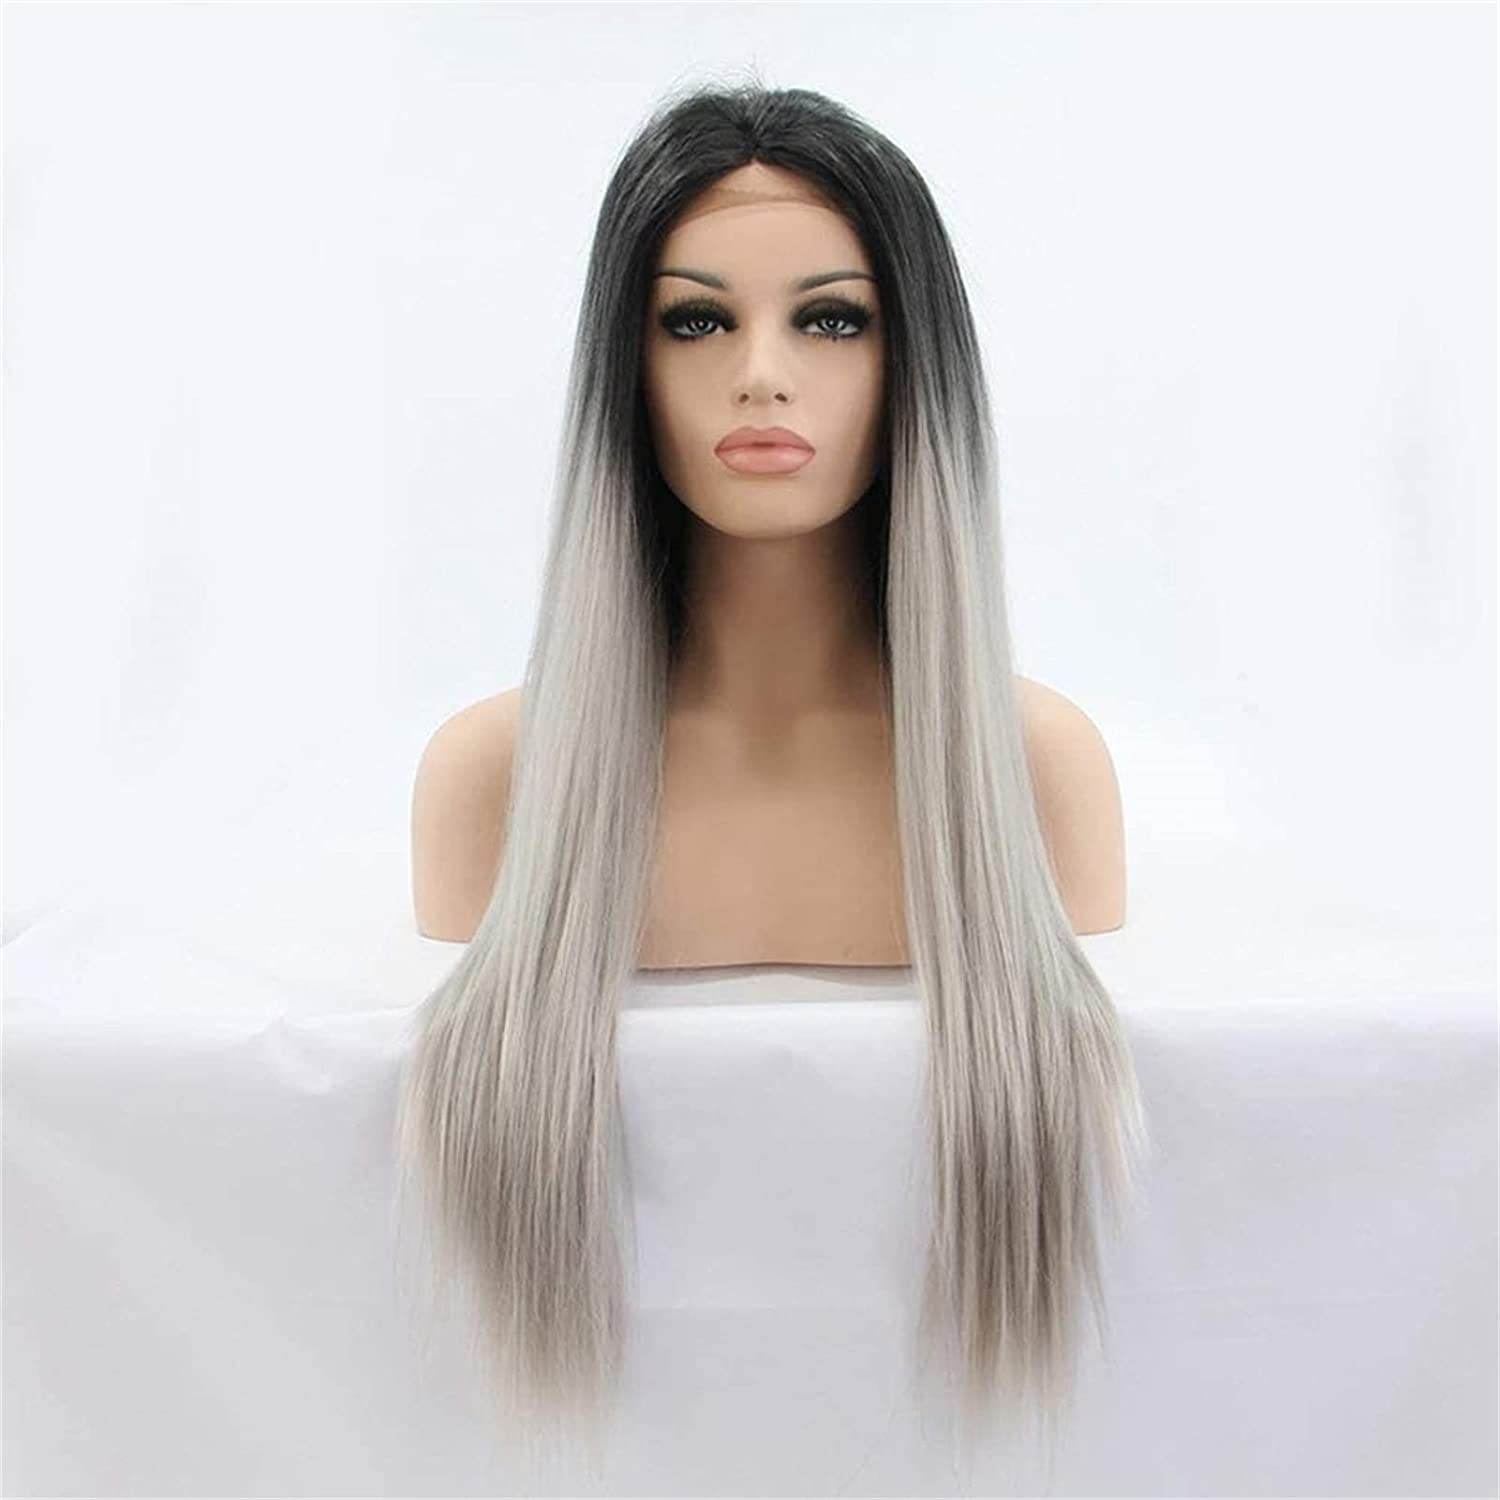 National products HTDYLHH Beautiful Wigs Front Lace Fiber L Headband Wig free shipping Chemical